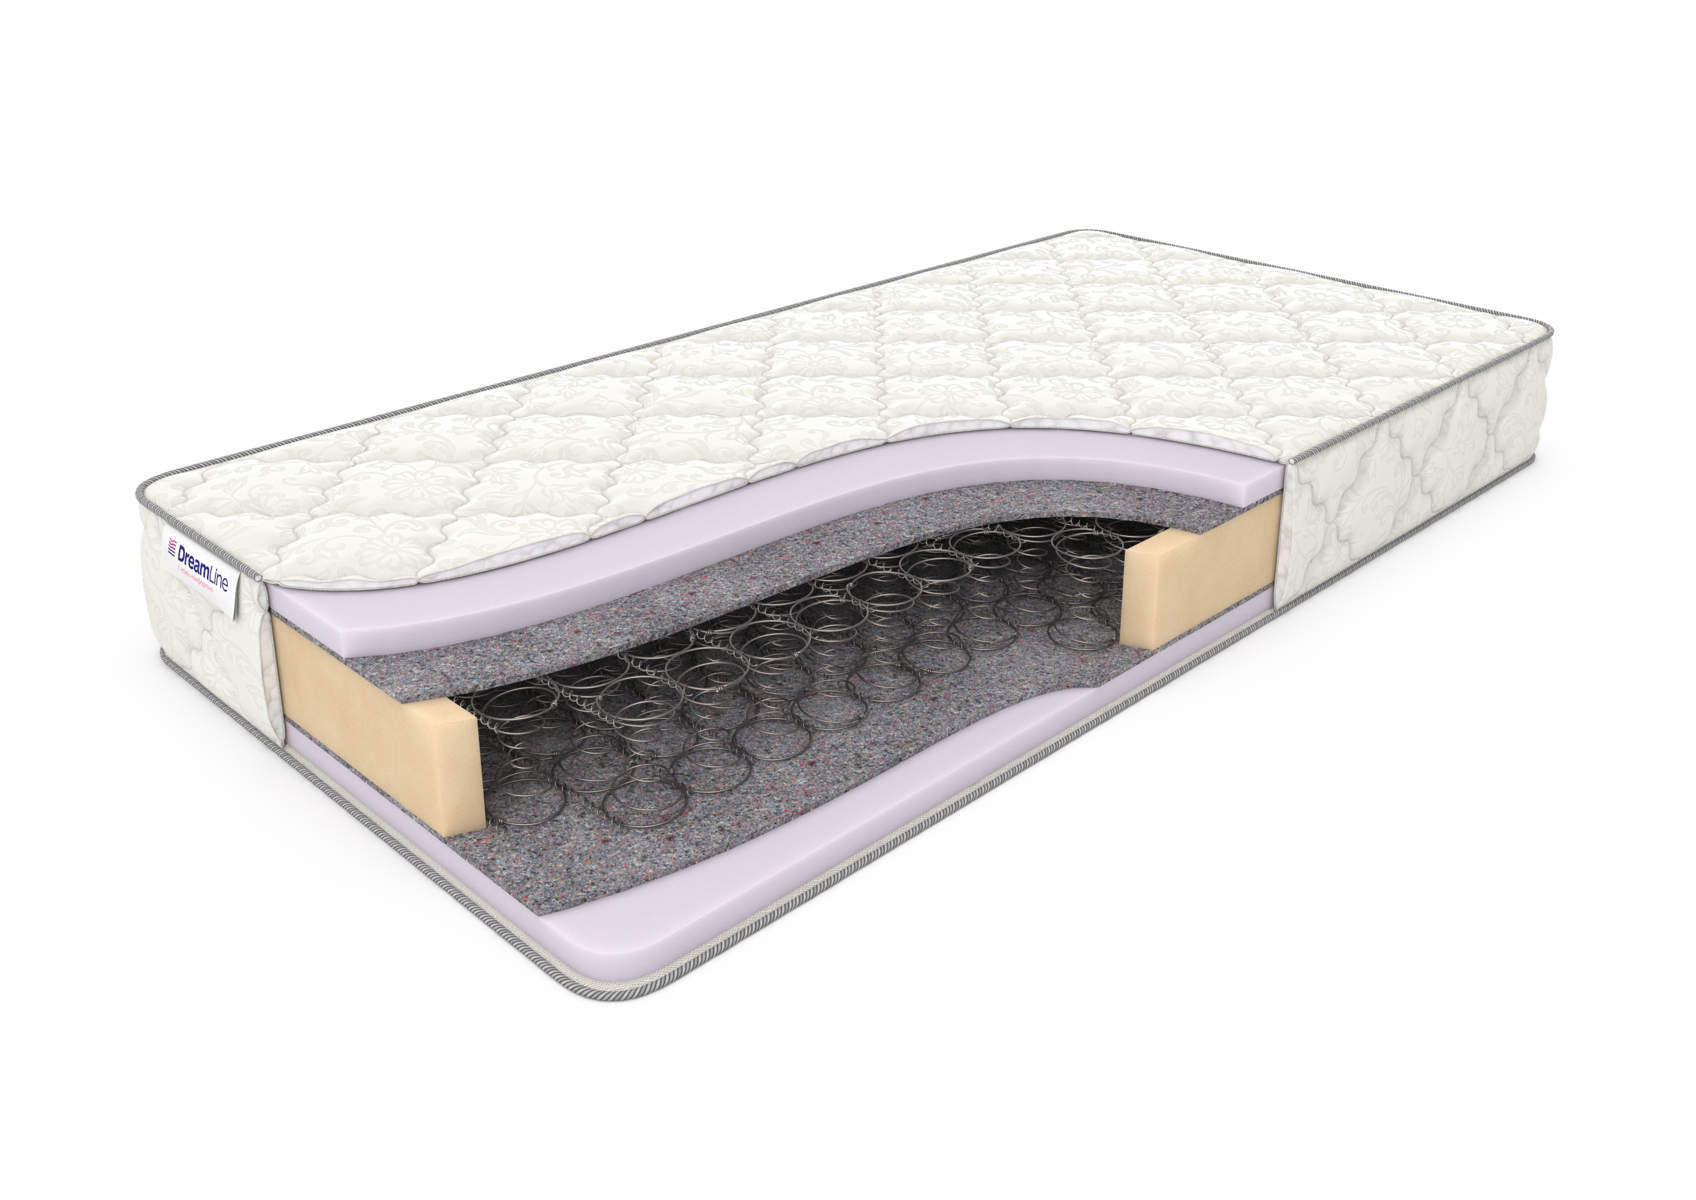 Матрас Dreamline Eco Foam BS, Купить Матрас Dreamline Eco Foam BS, Матрас Dreamline Eco Foam BS #UF_META#